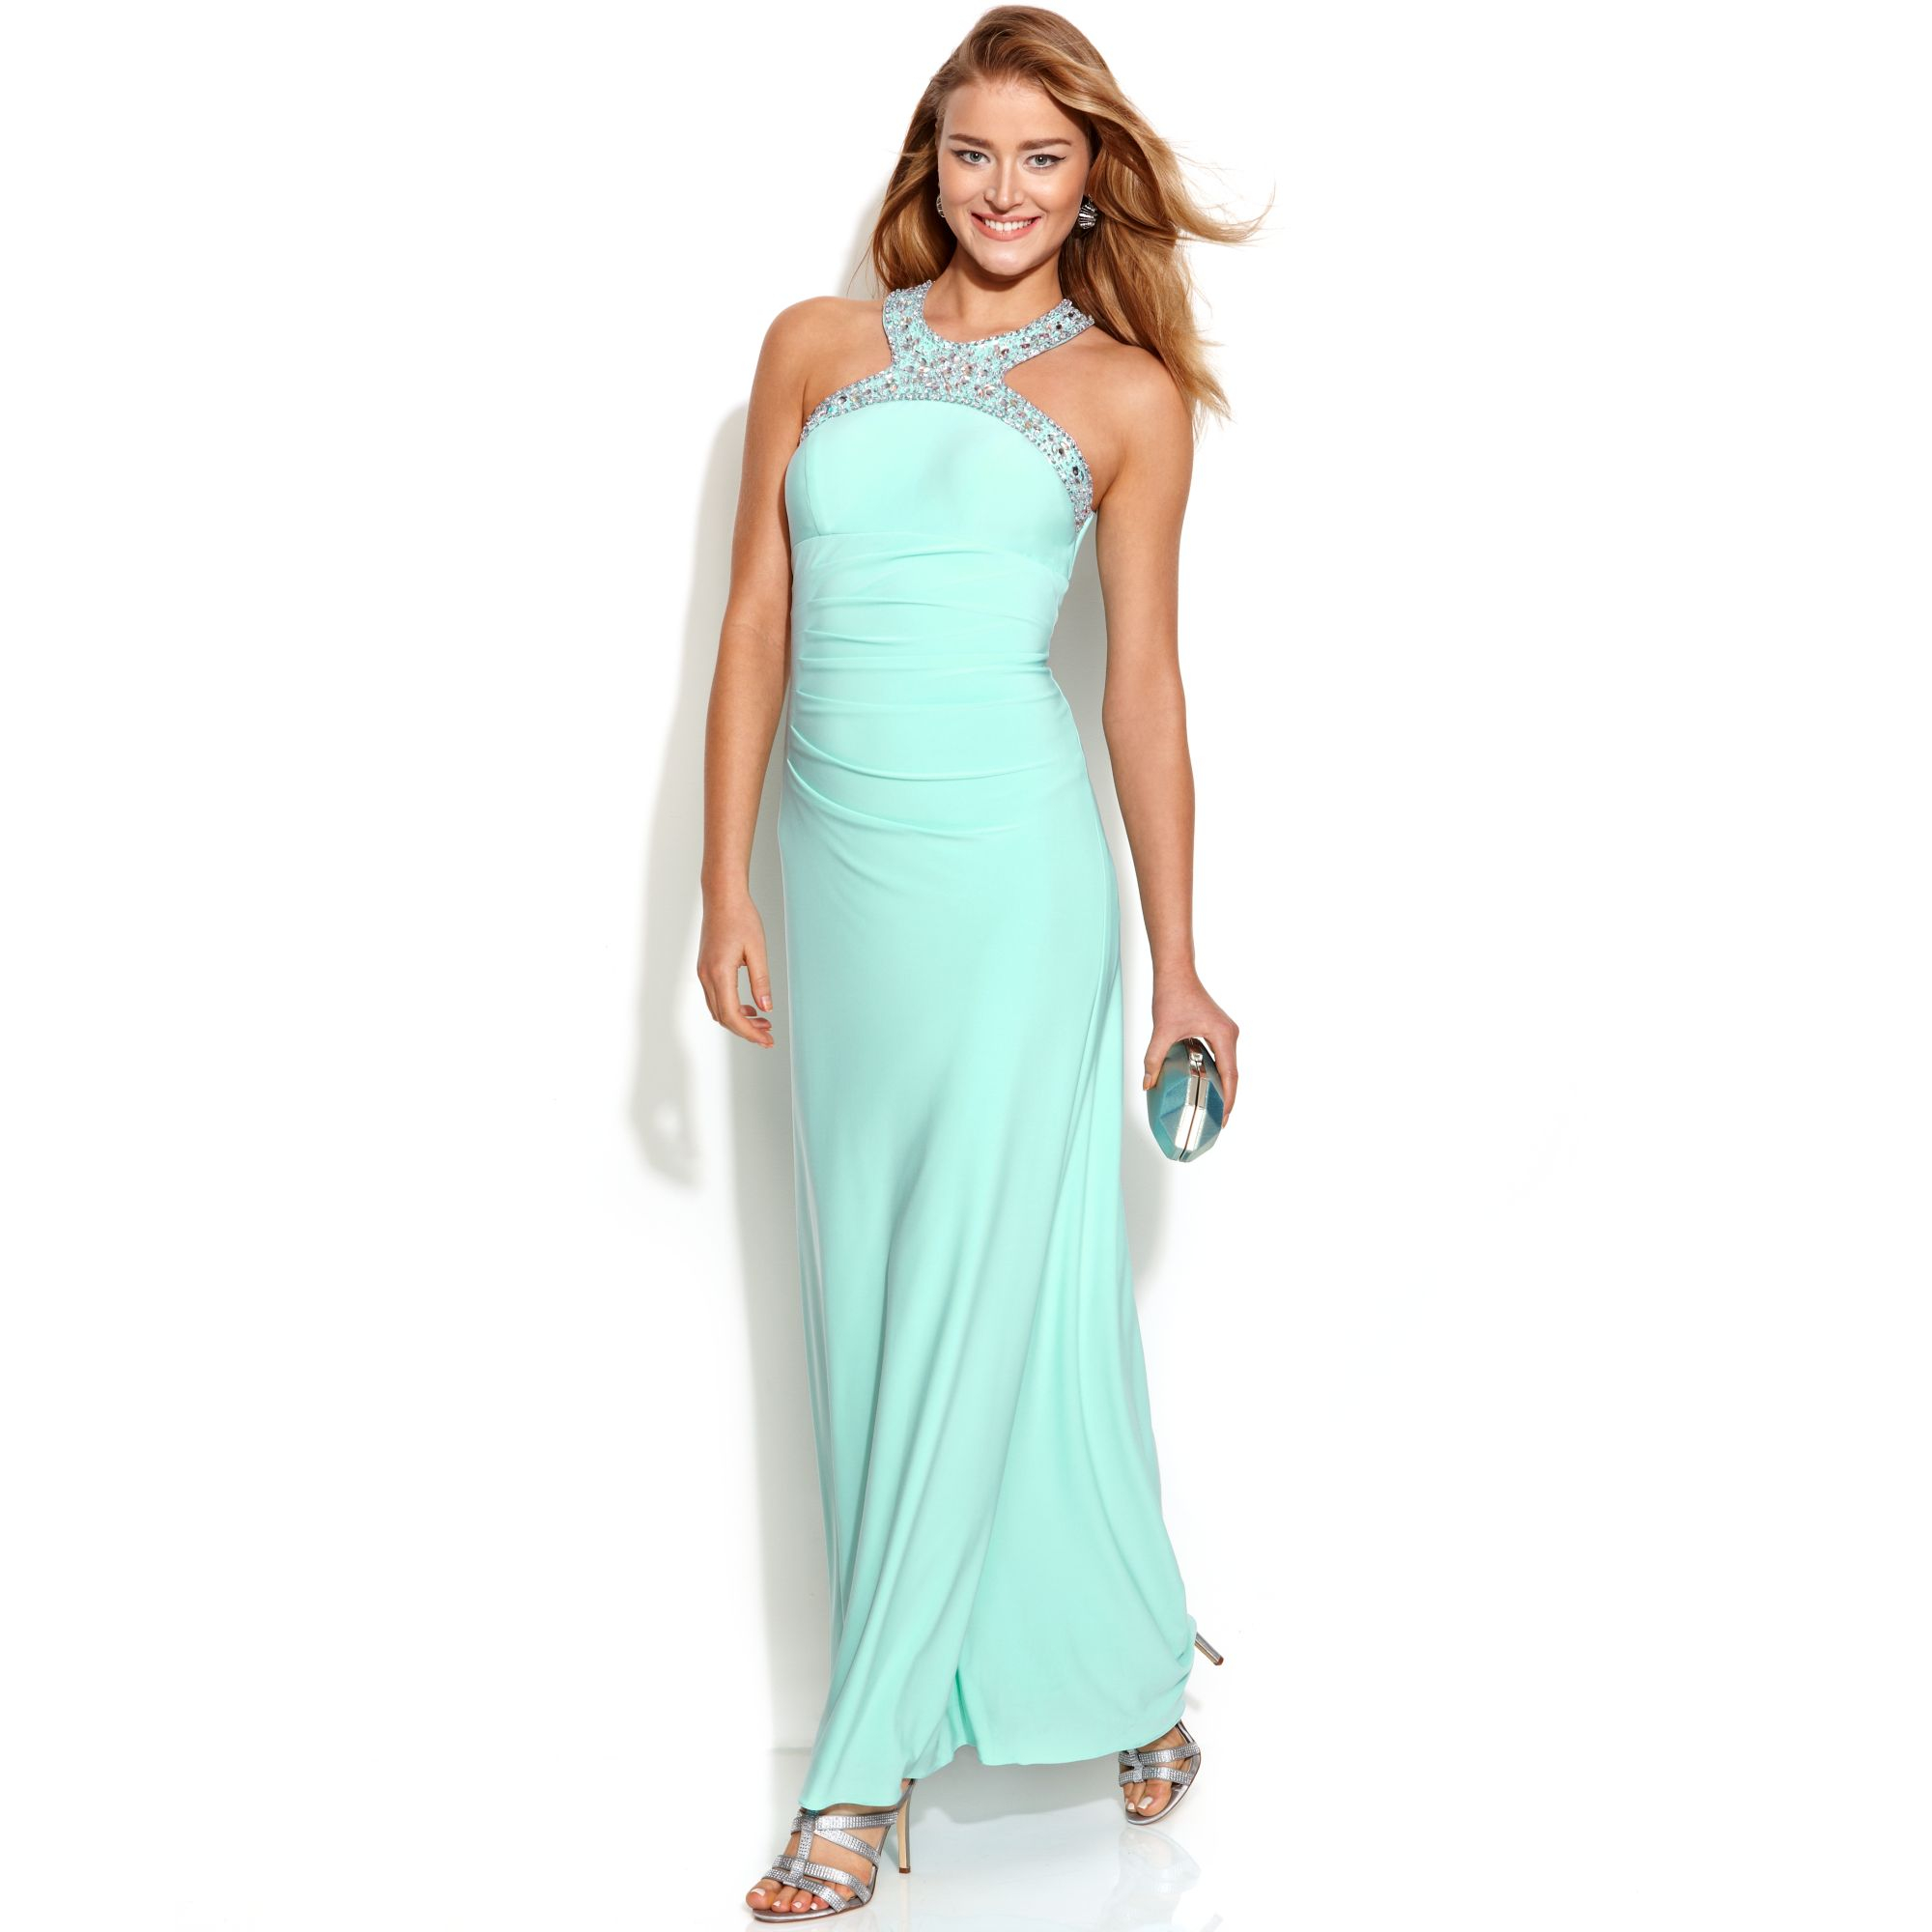 Lyst - Xscape Jeweltrim Ruched Halter Gown in Green